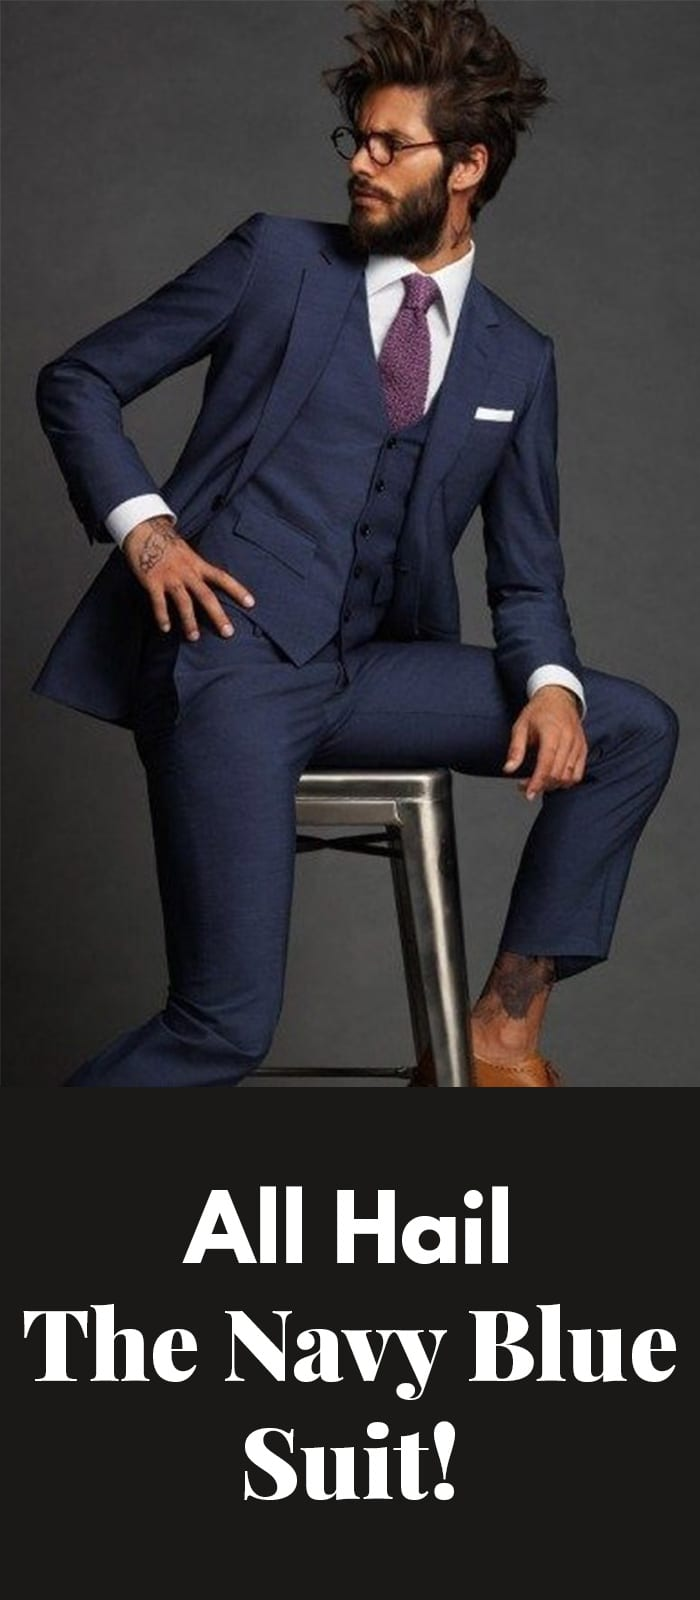 The Navy Blue Suit!